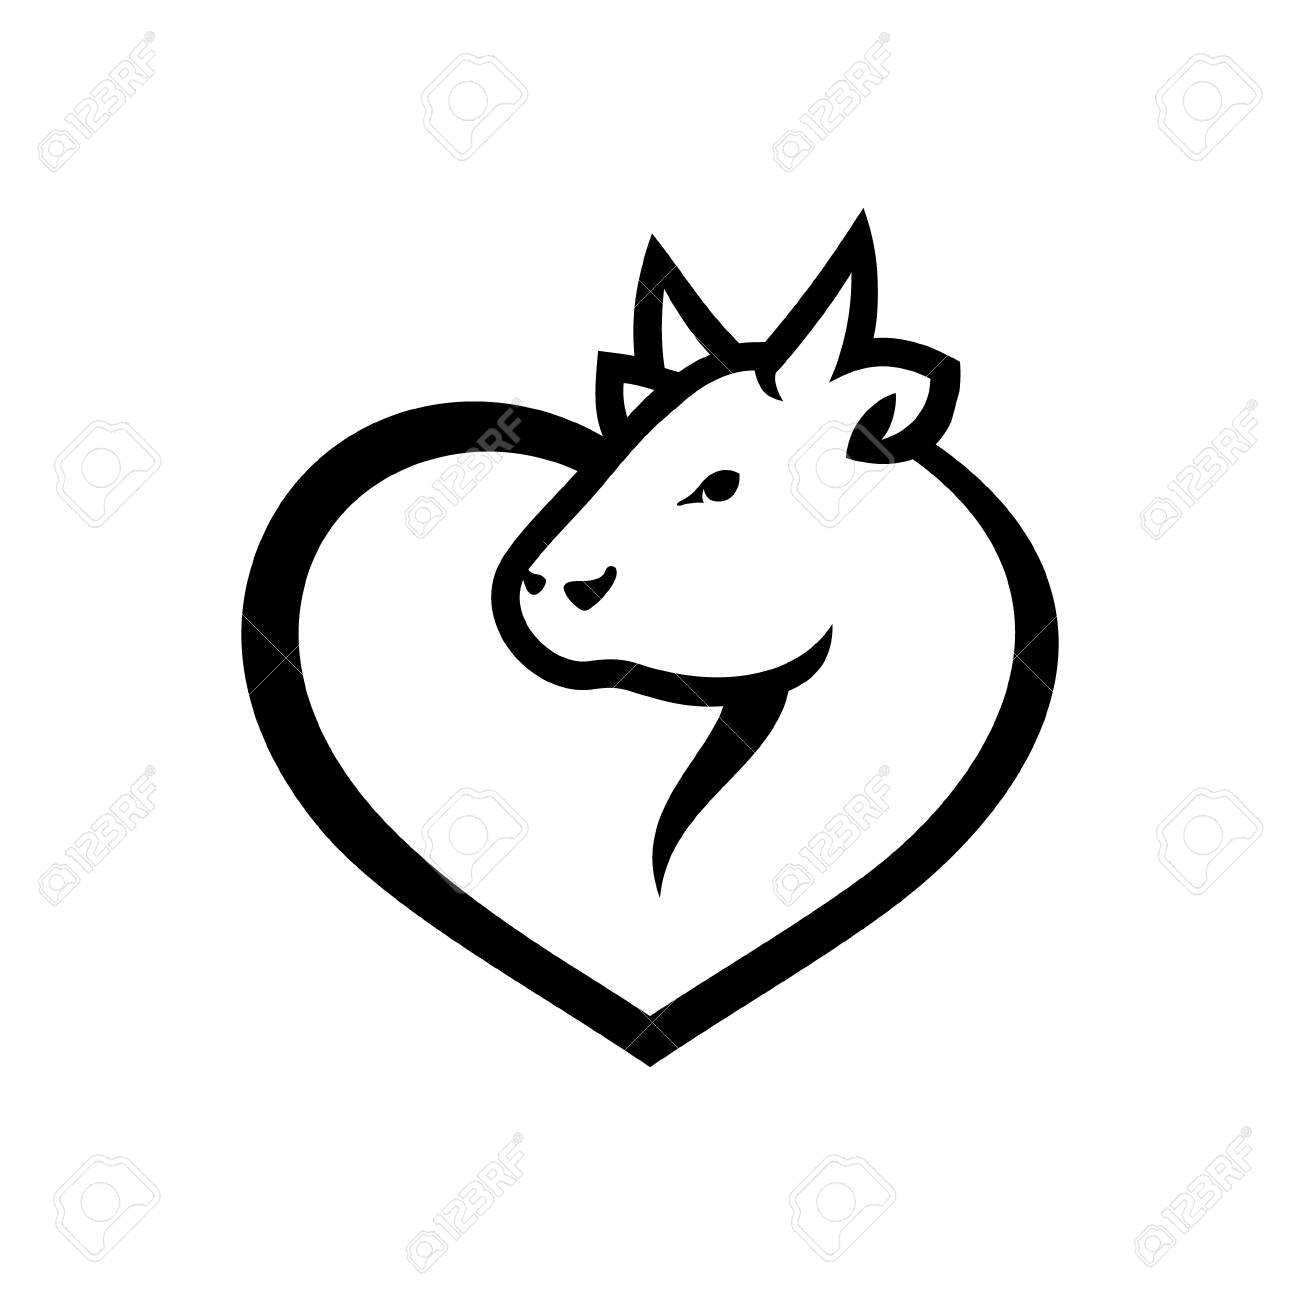 Cow Head And Heart Symbol Isolated On White Background Royalty Free